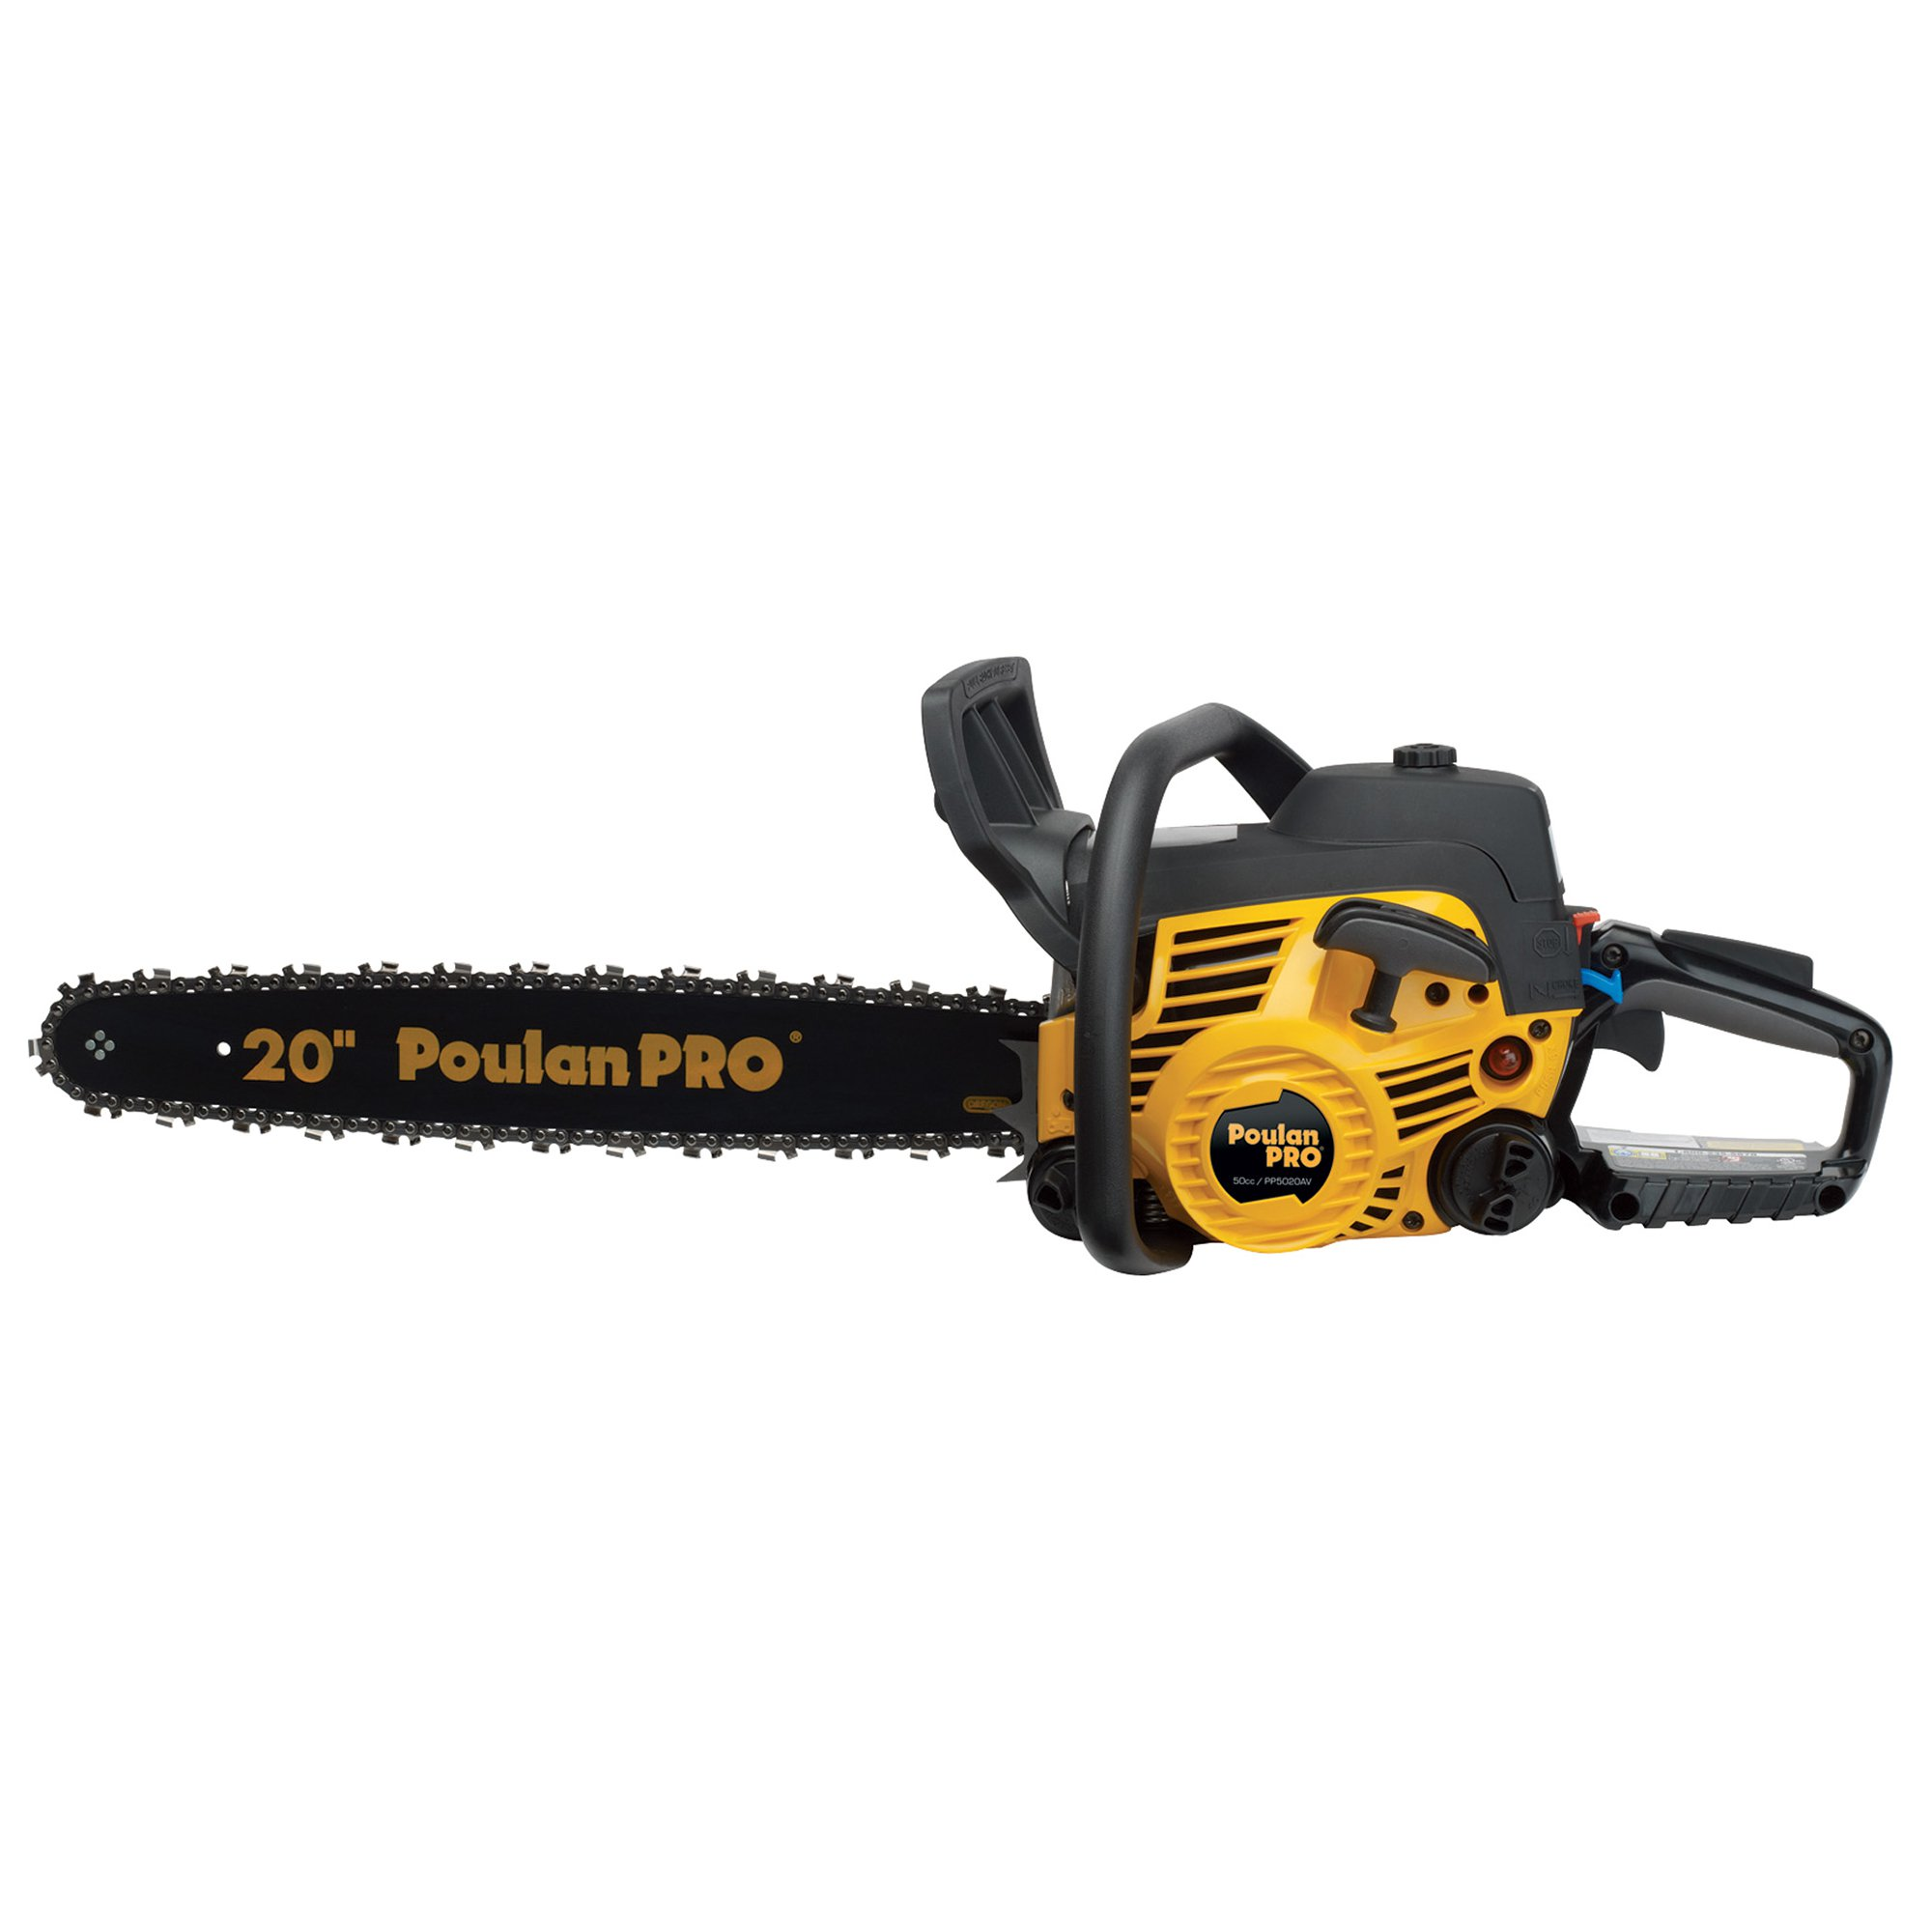 "Factory Reconditioned Poulan Pro 20"" 50CC Gas Chainsaw by Poulan Pro"